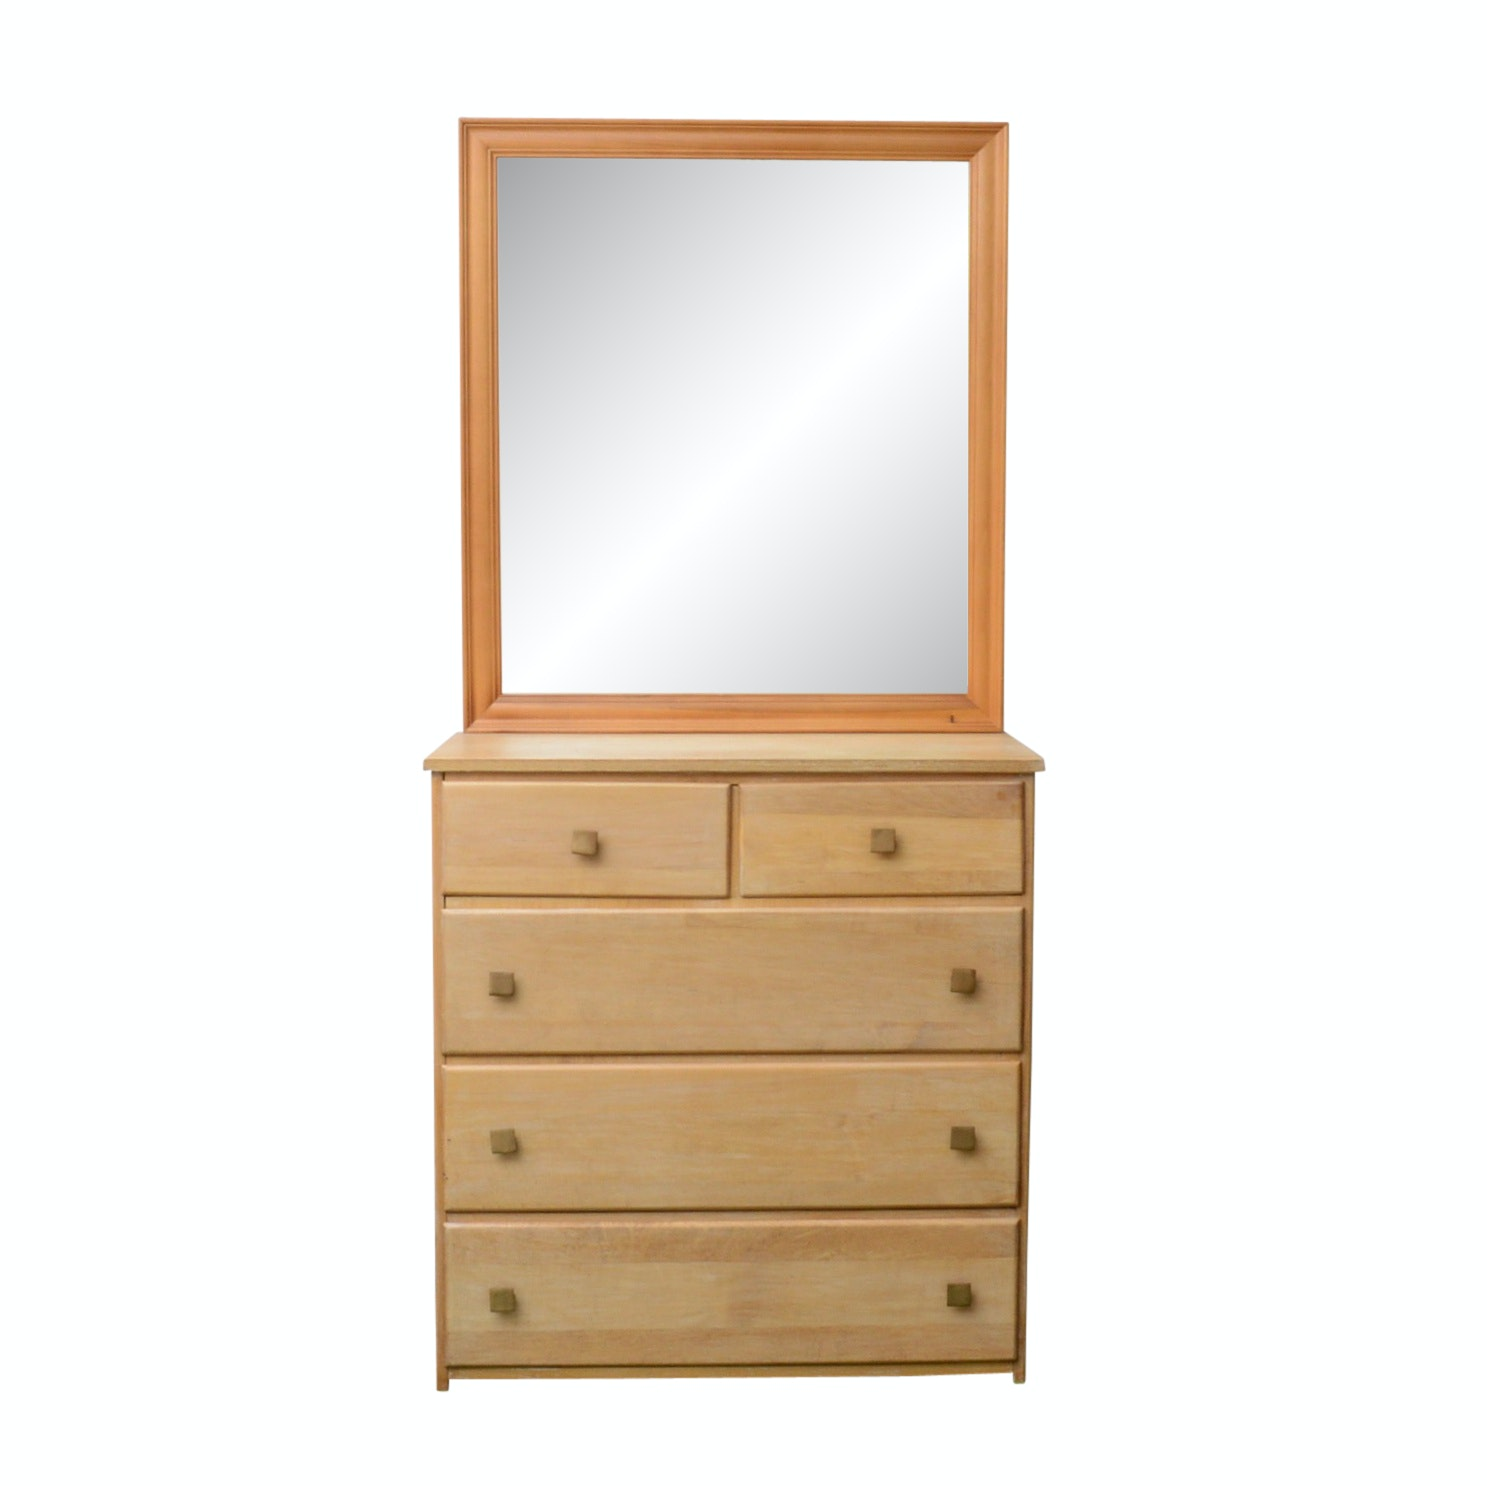 Solid Maple Chest of Drawers with Mirror